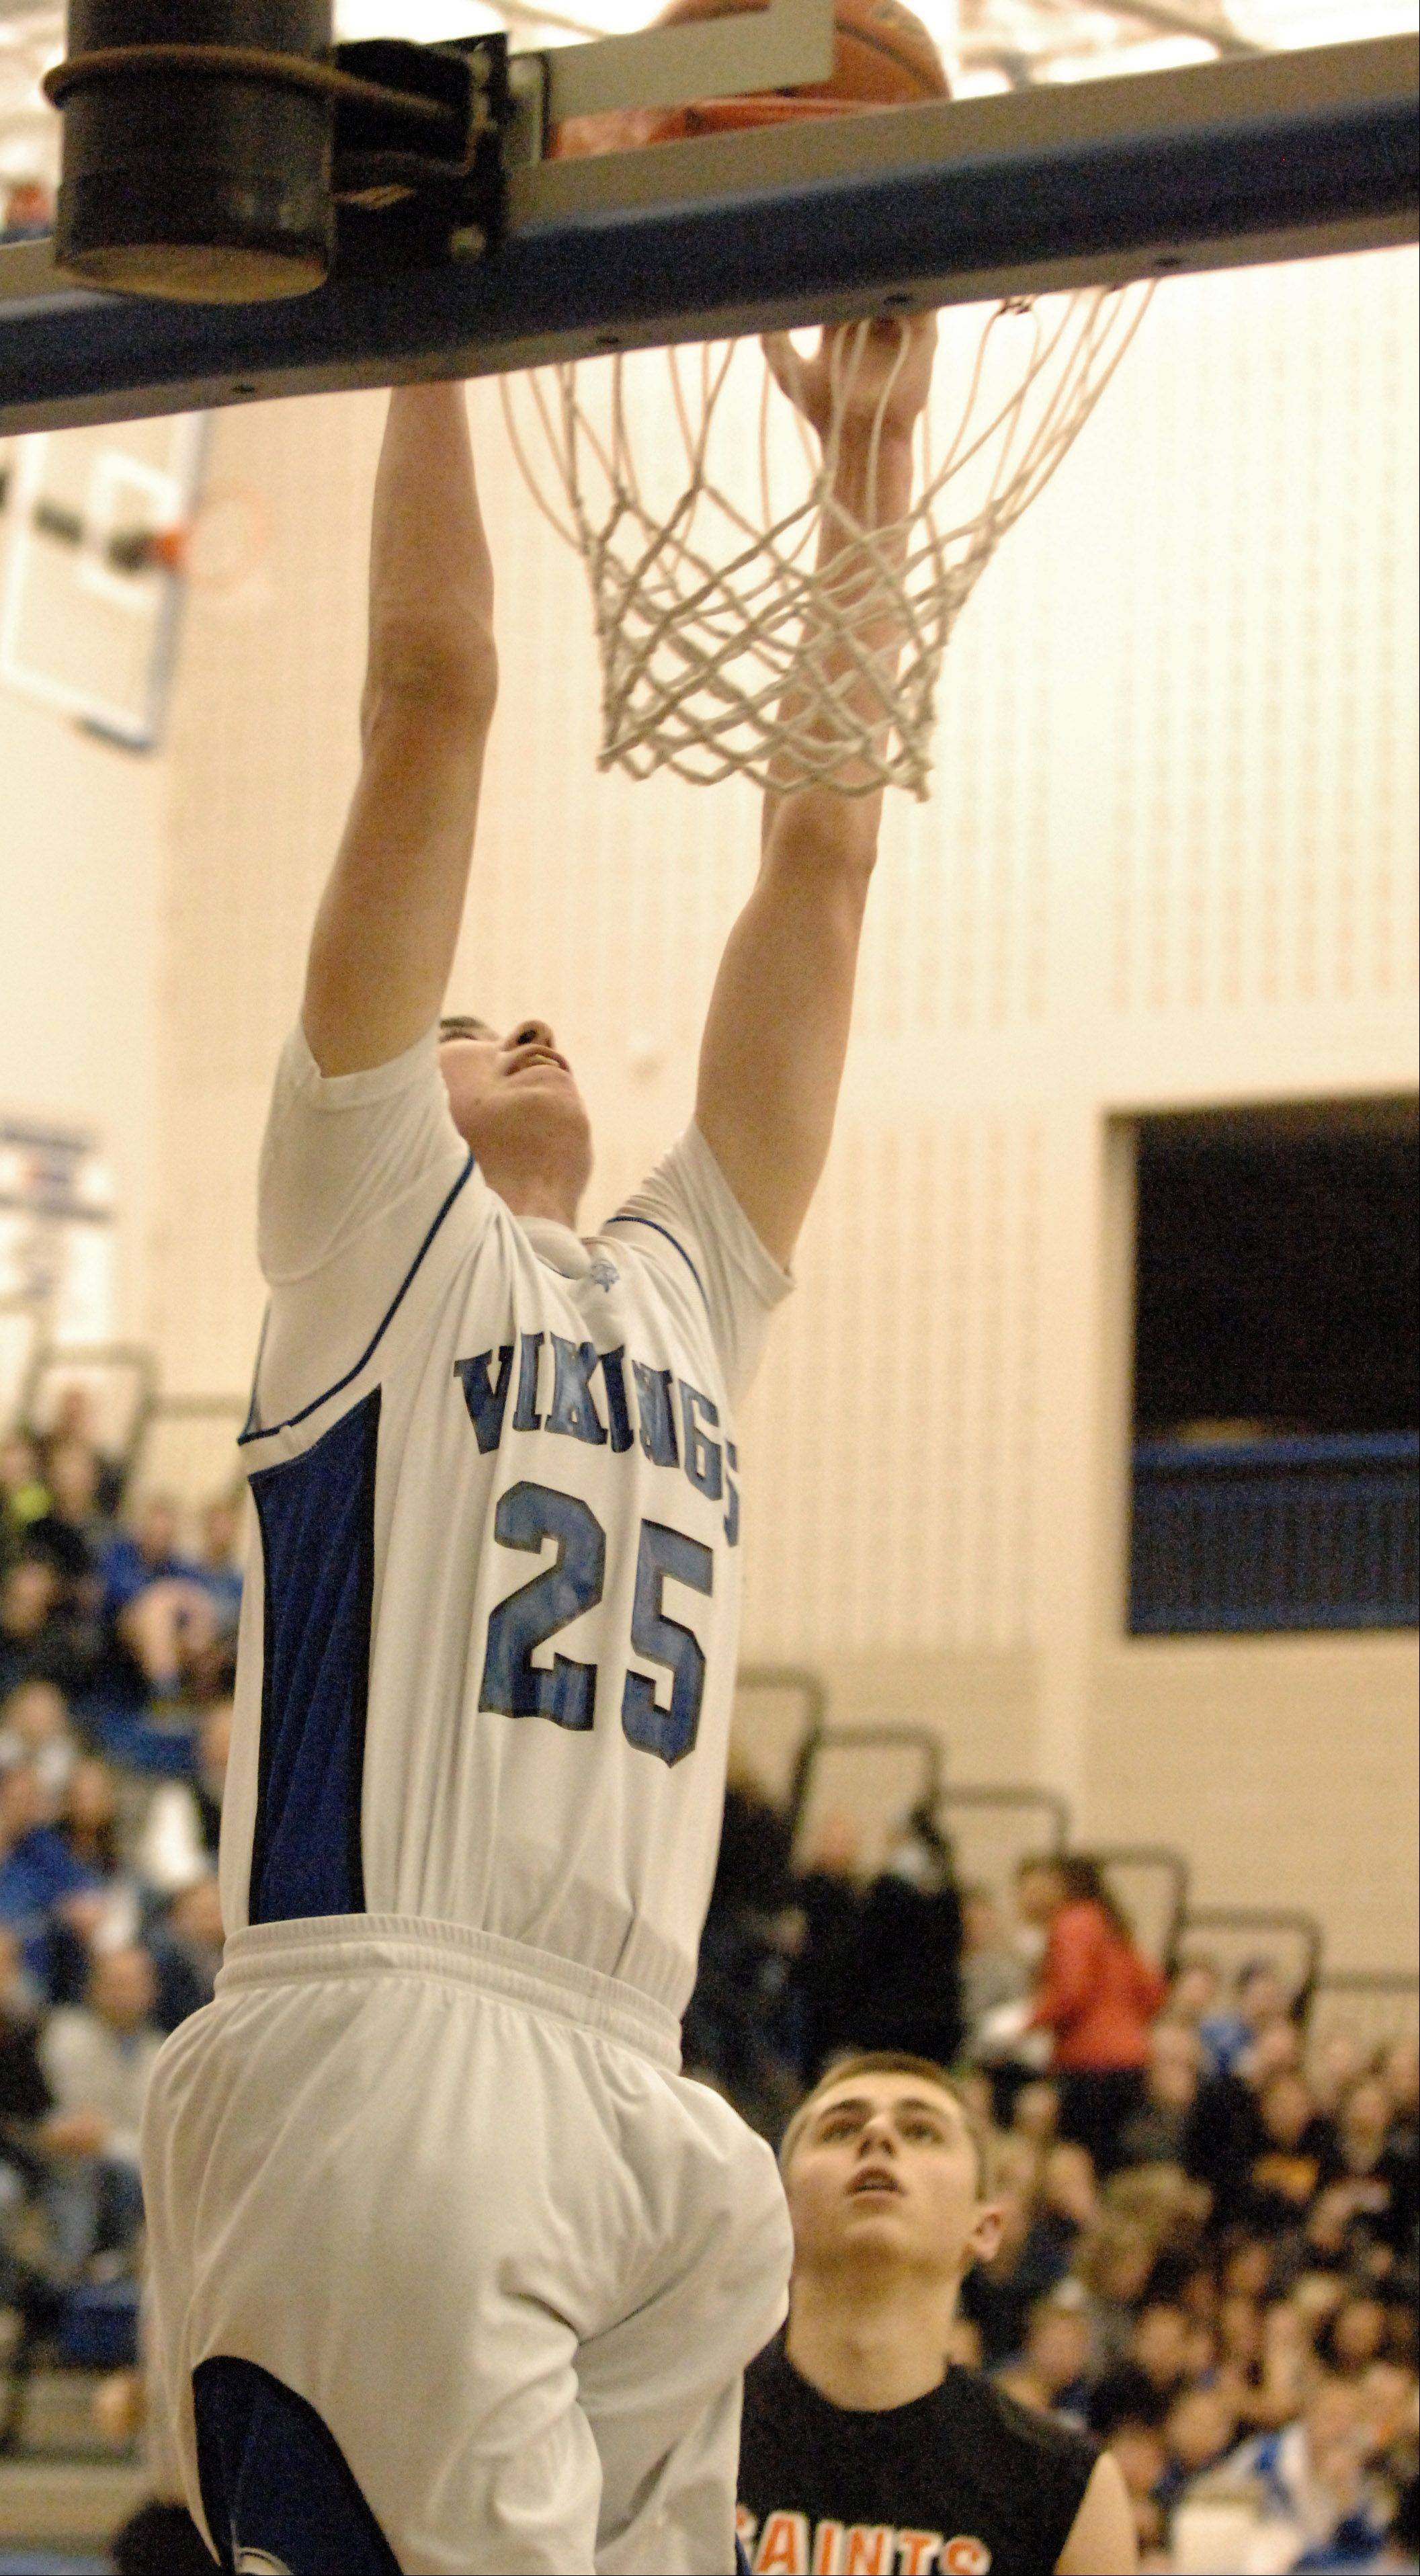 Geneva's Nate Navigato dunks on a fast break against St. Charles East.